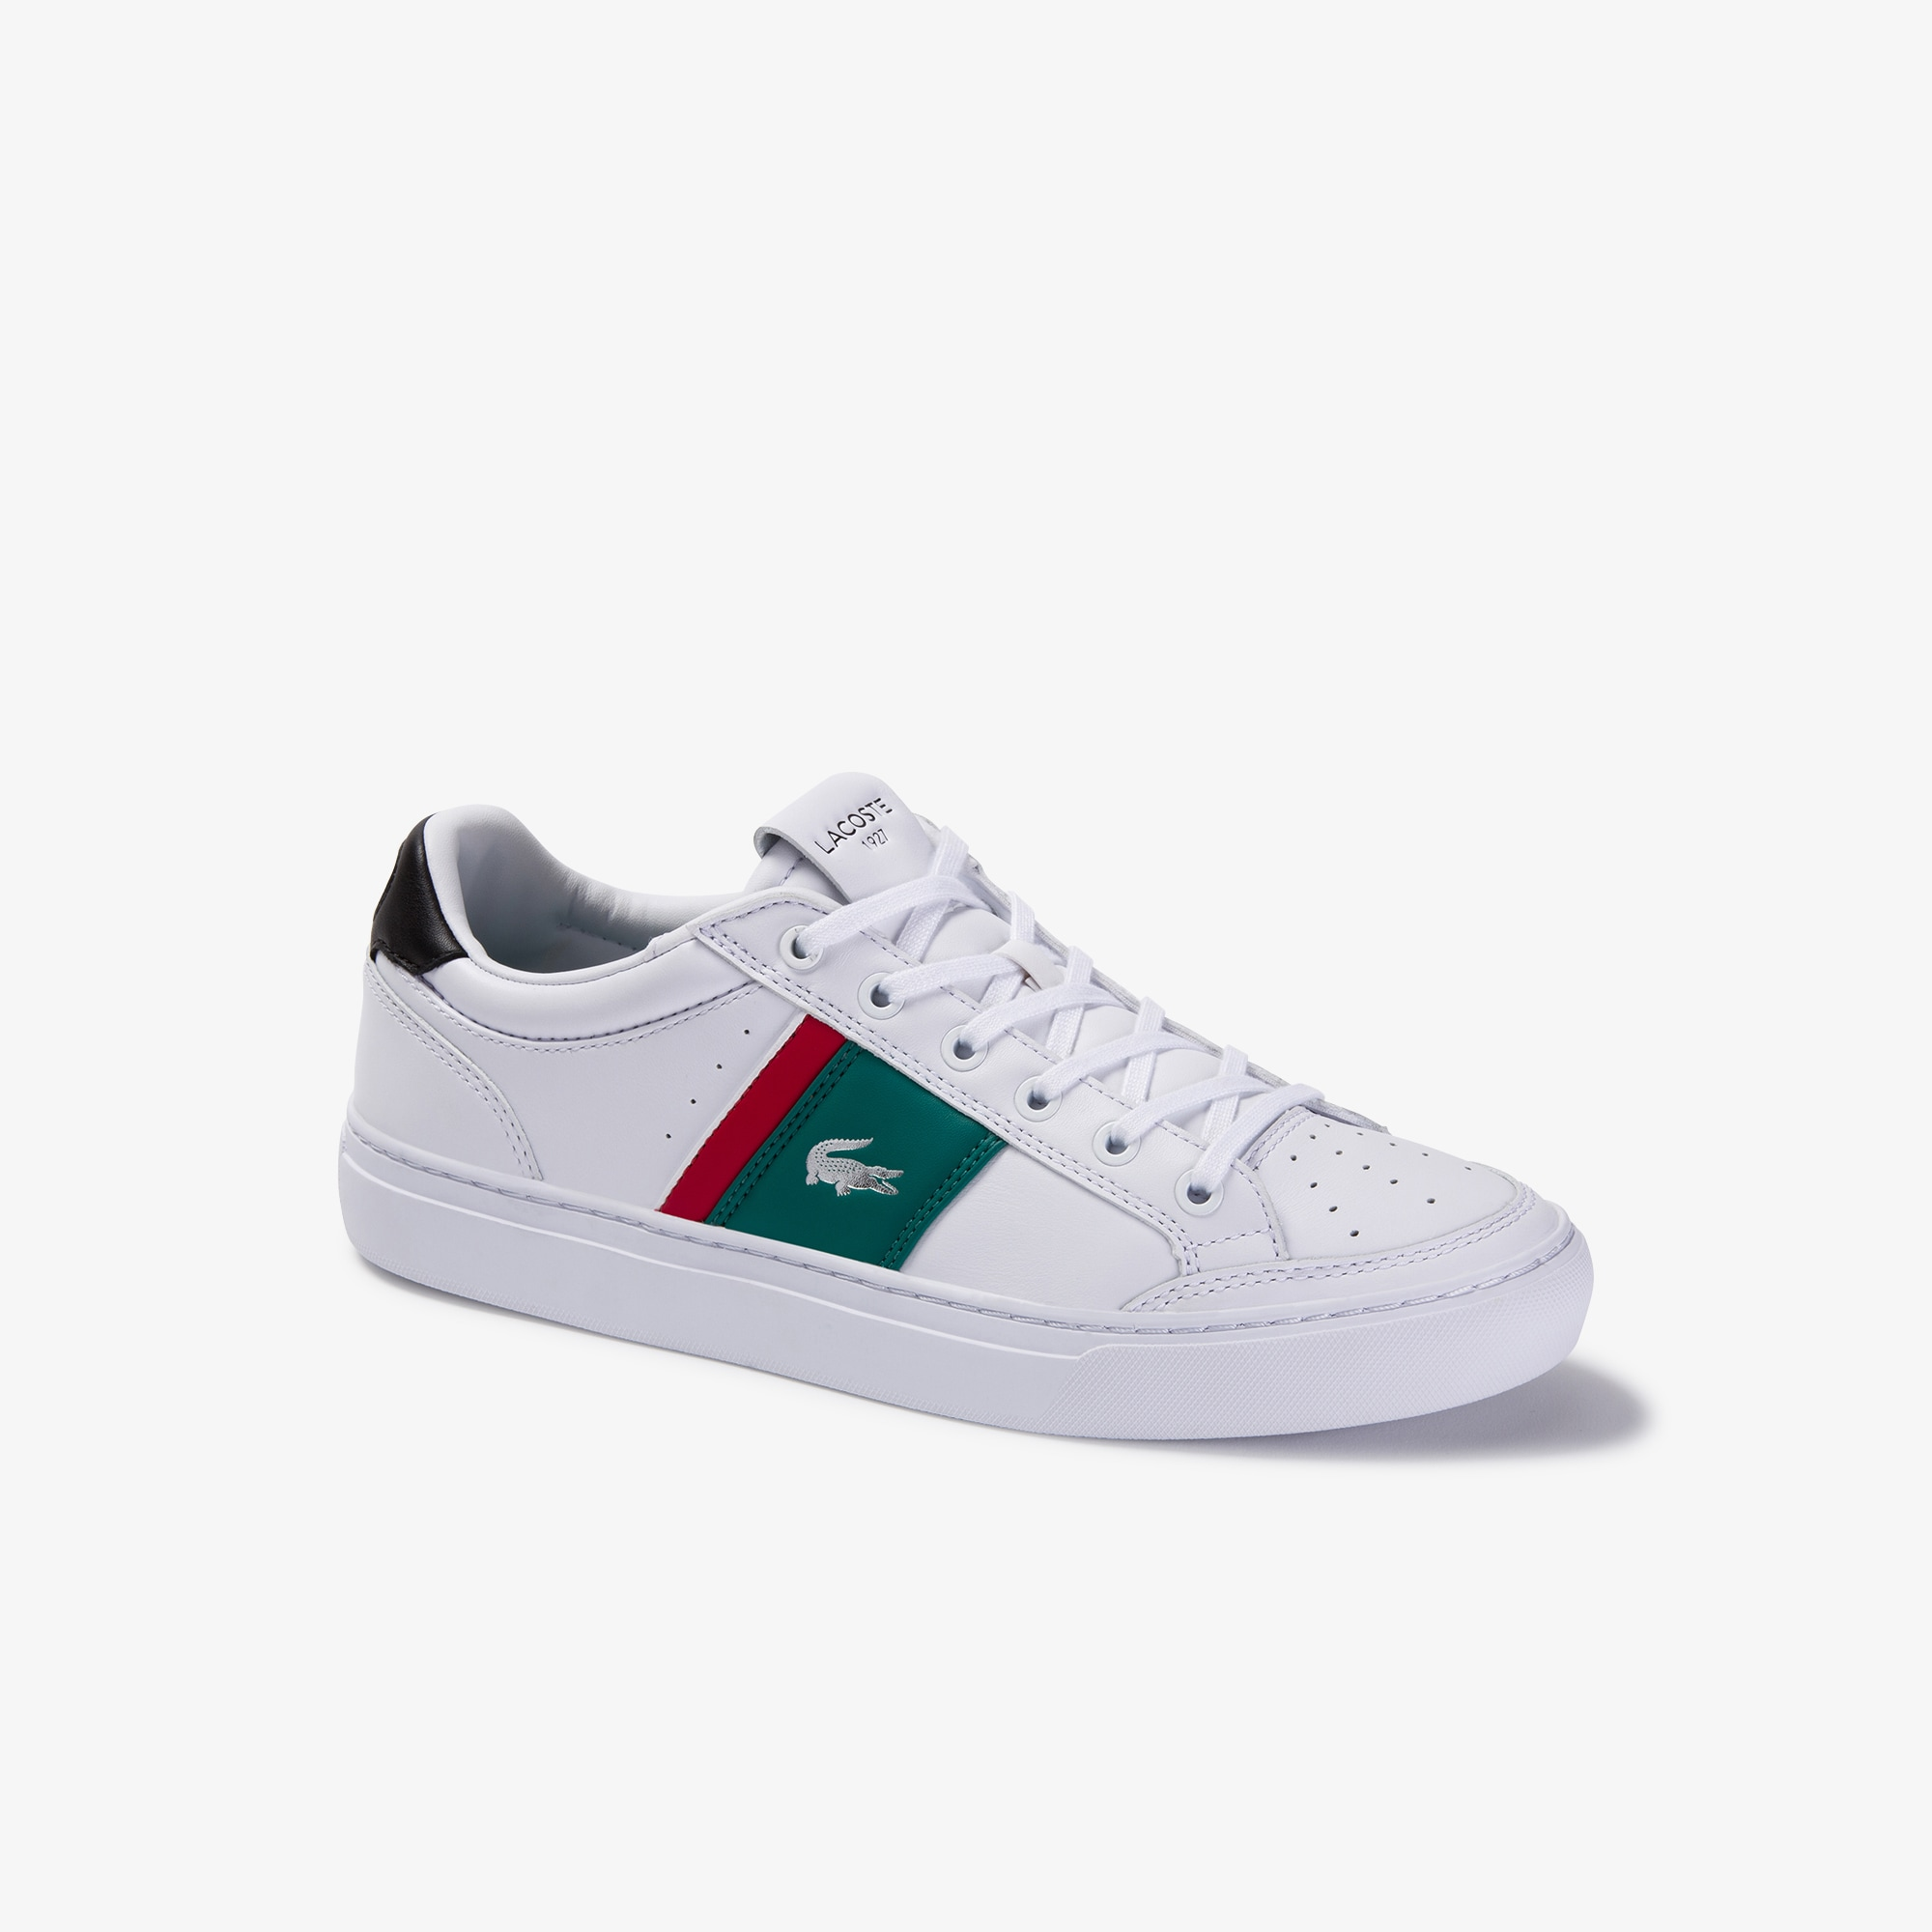 Men's Courtline Perforated Leather Sneakers